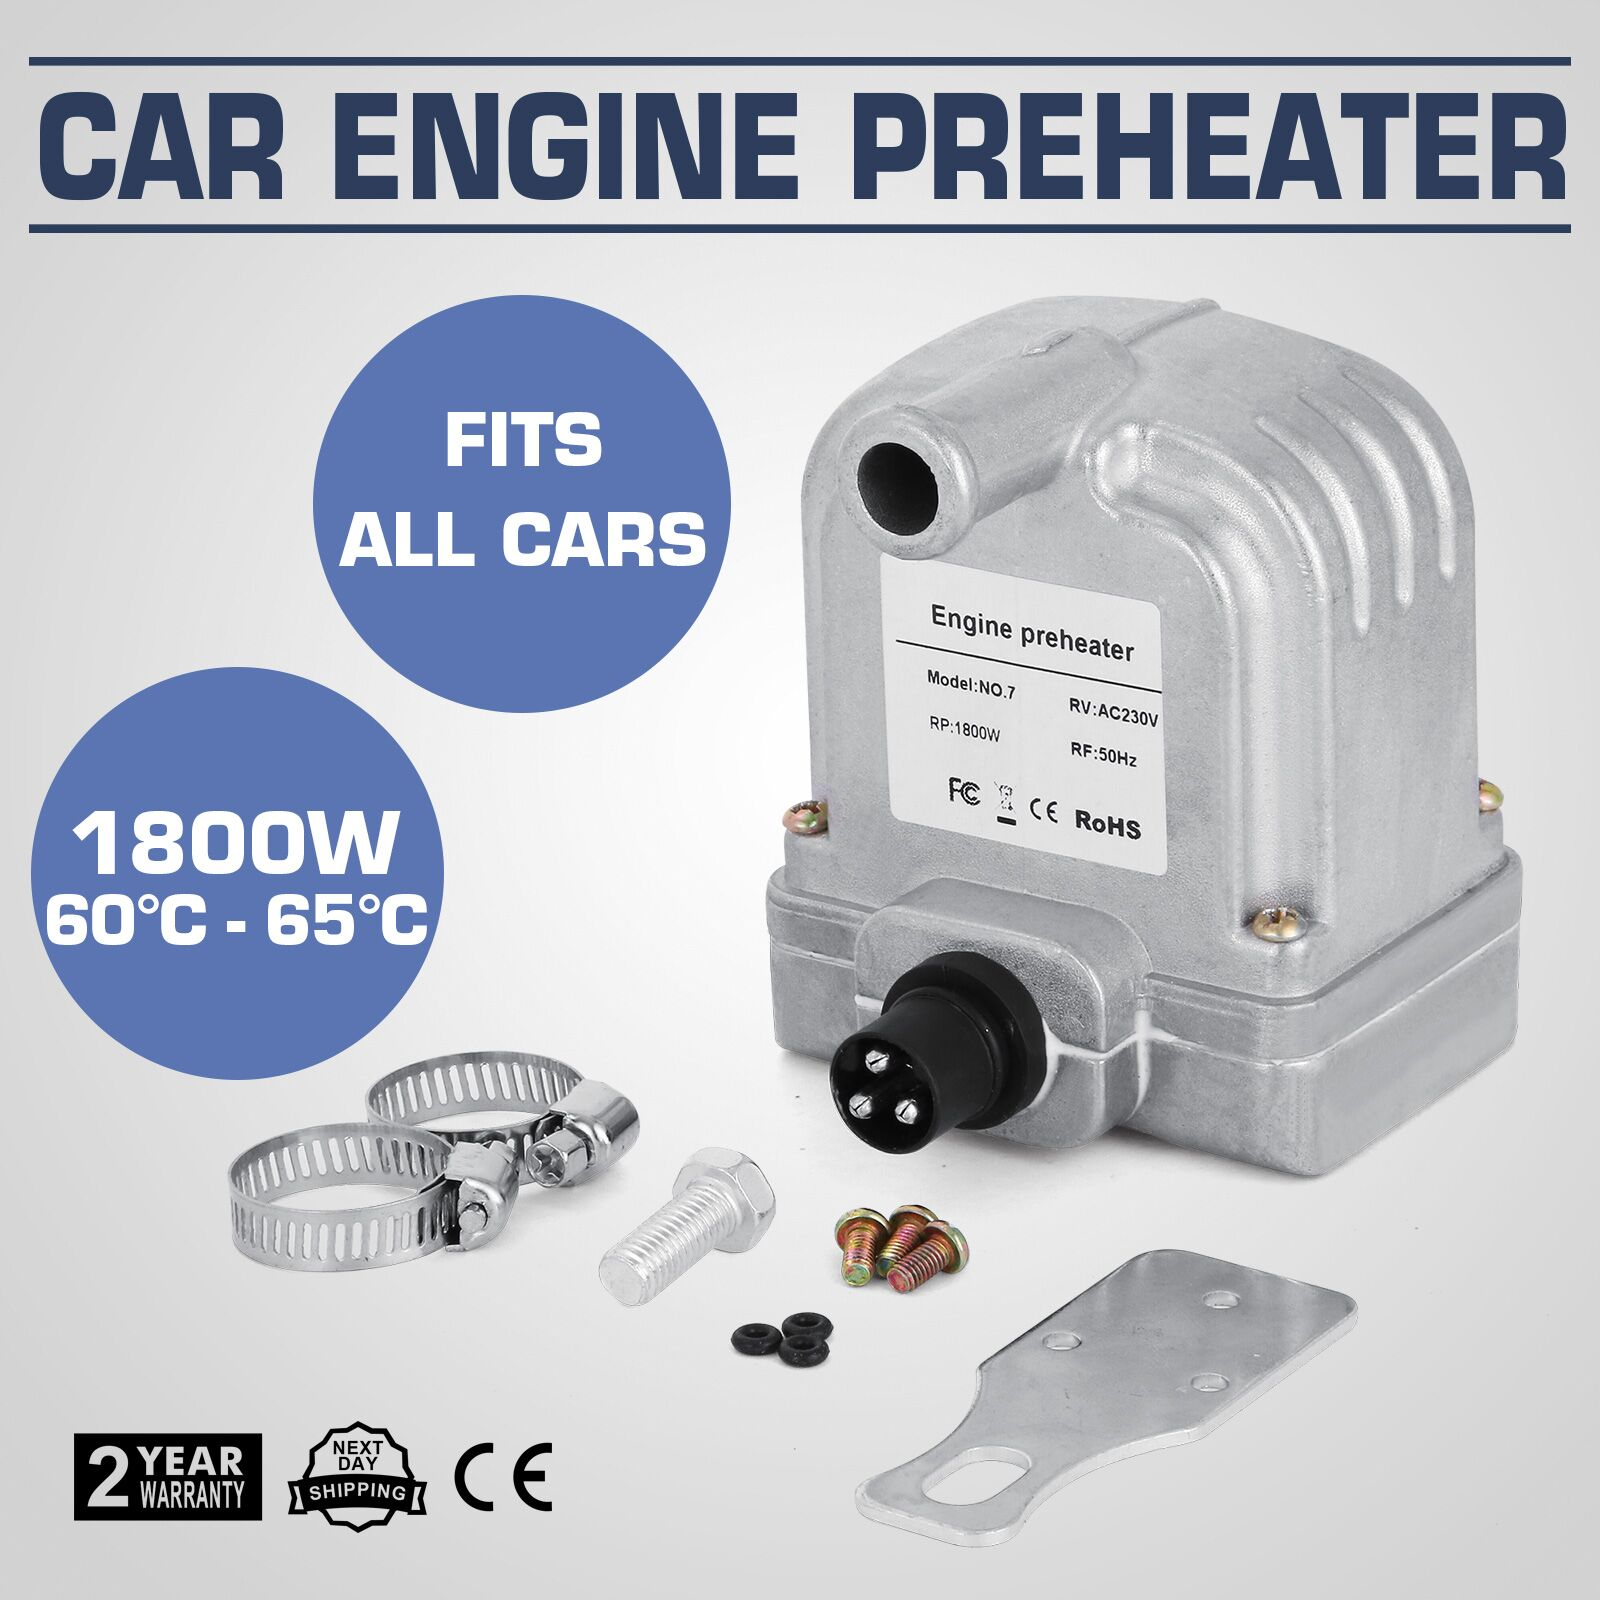 1 8kw engine coolant preheater 220v fits all cars 60 c 65 c get ebay. Black Bedroom Furniture Sets. Home Design Ideas